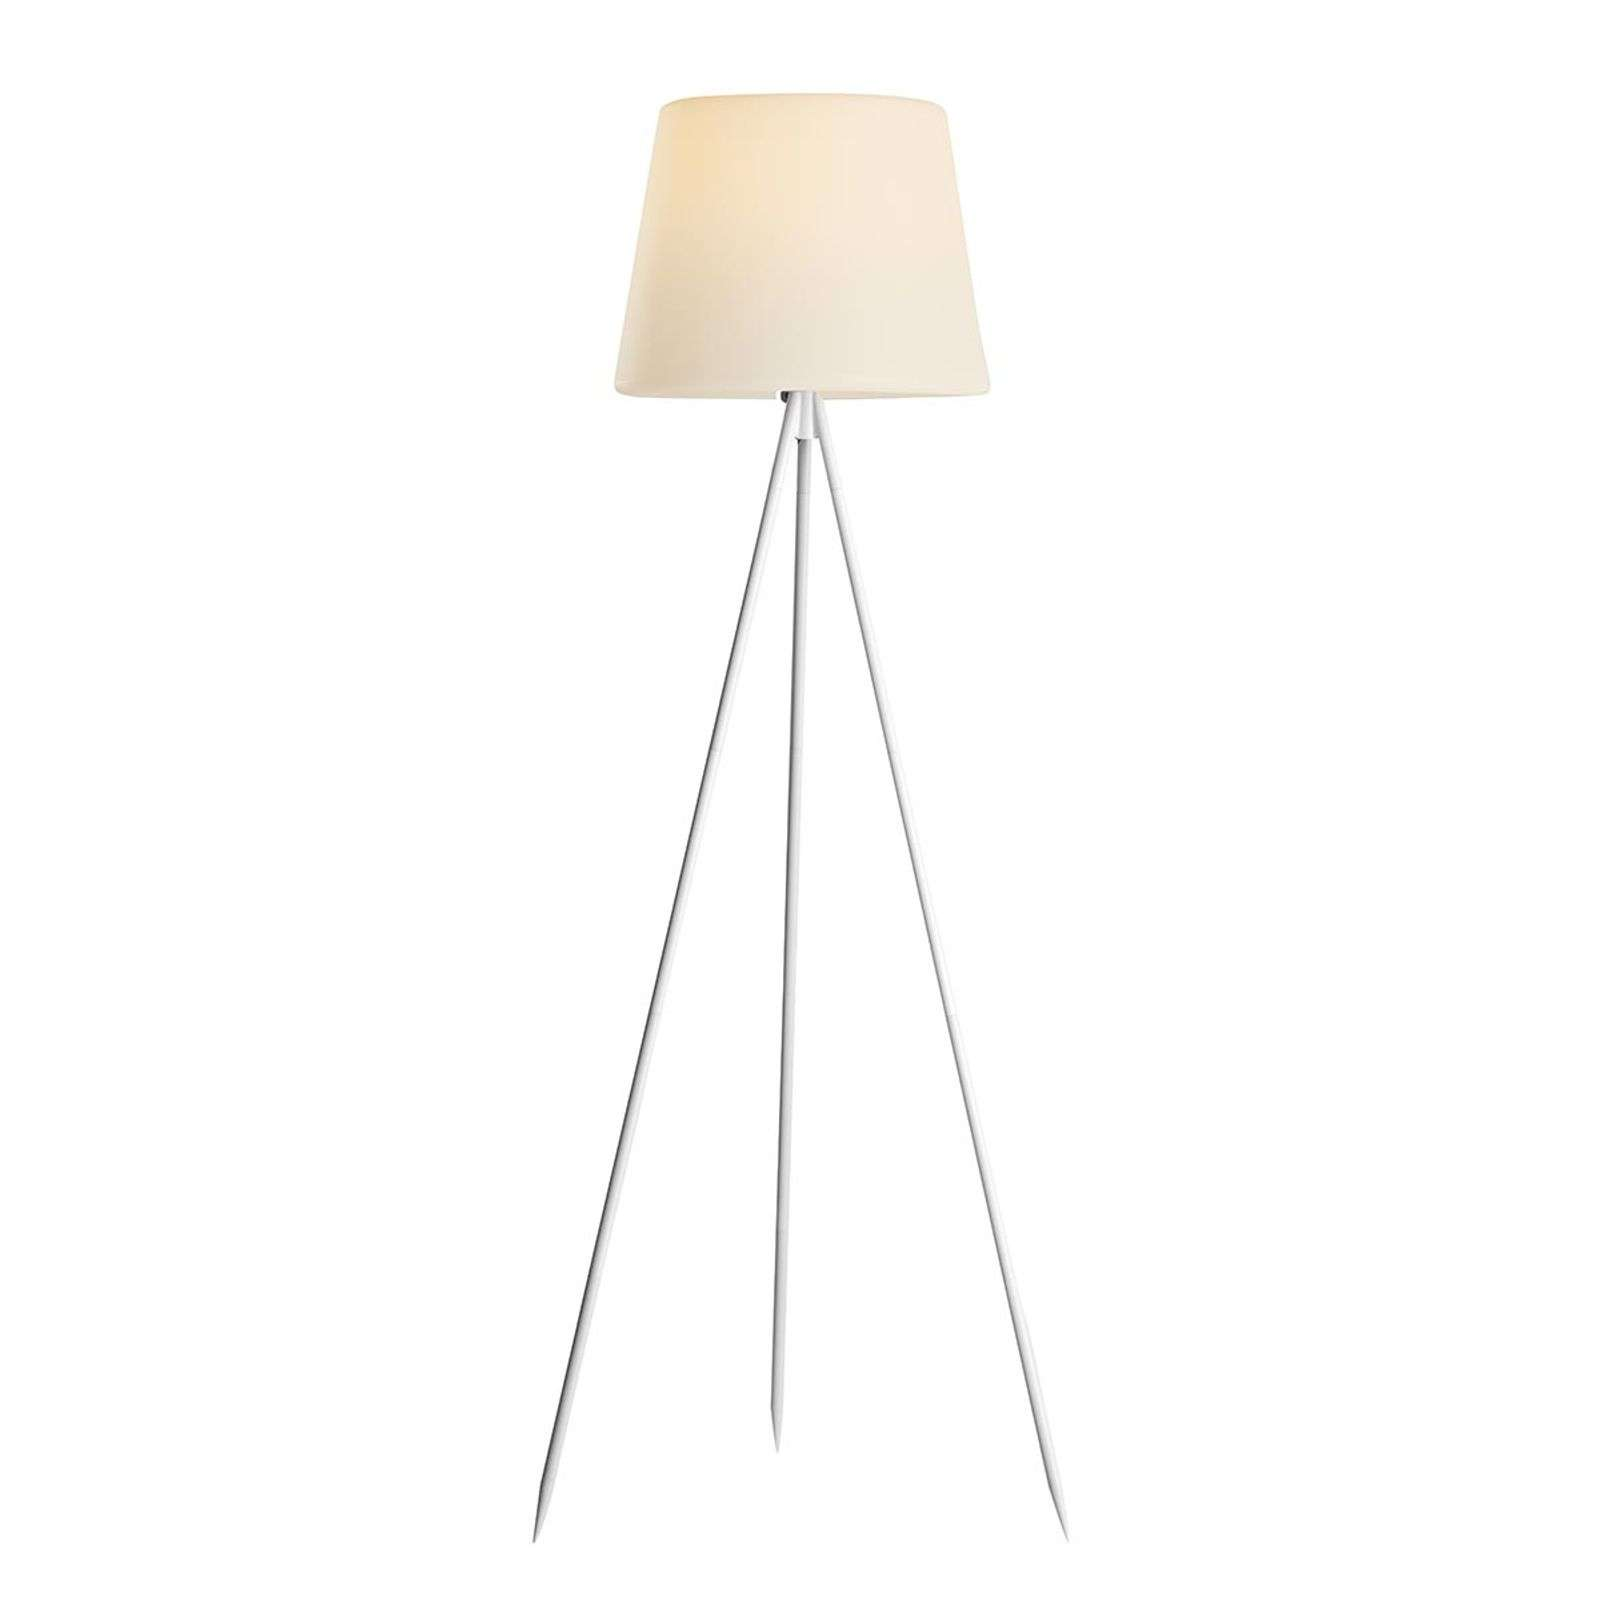 Lampadaire solaire LED Nerea, support blanc